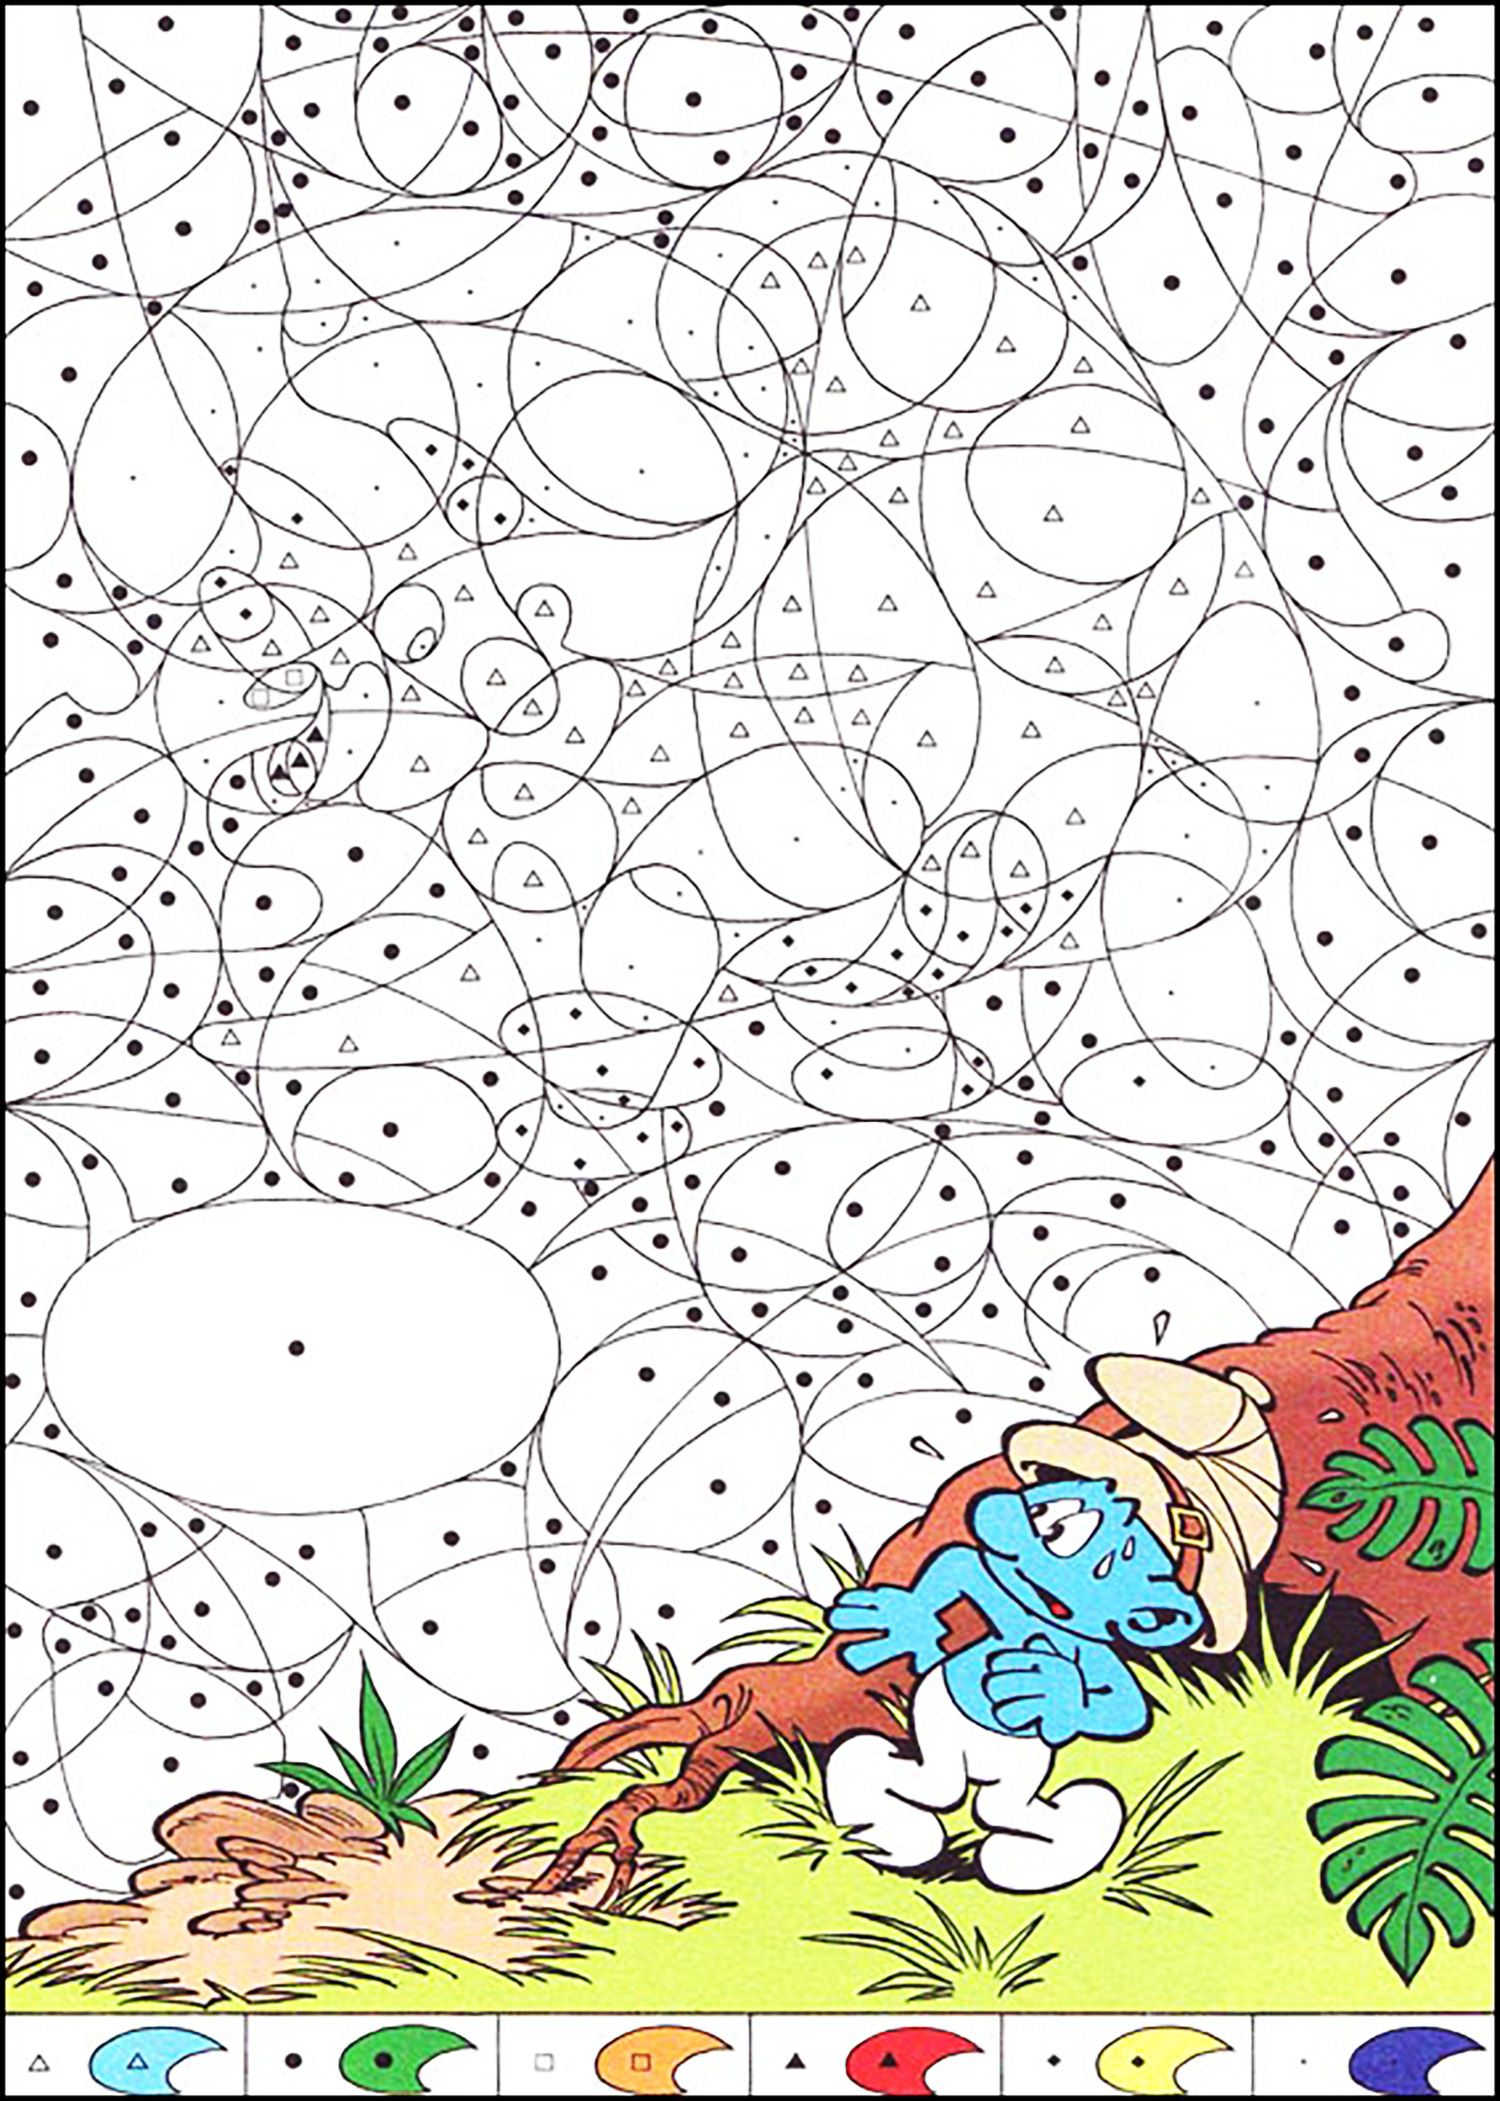 Magical Coloring Page For Kids With The Smurfs From The